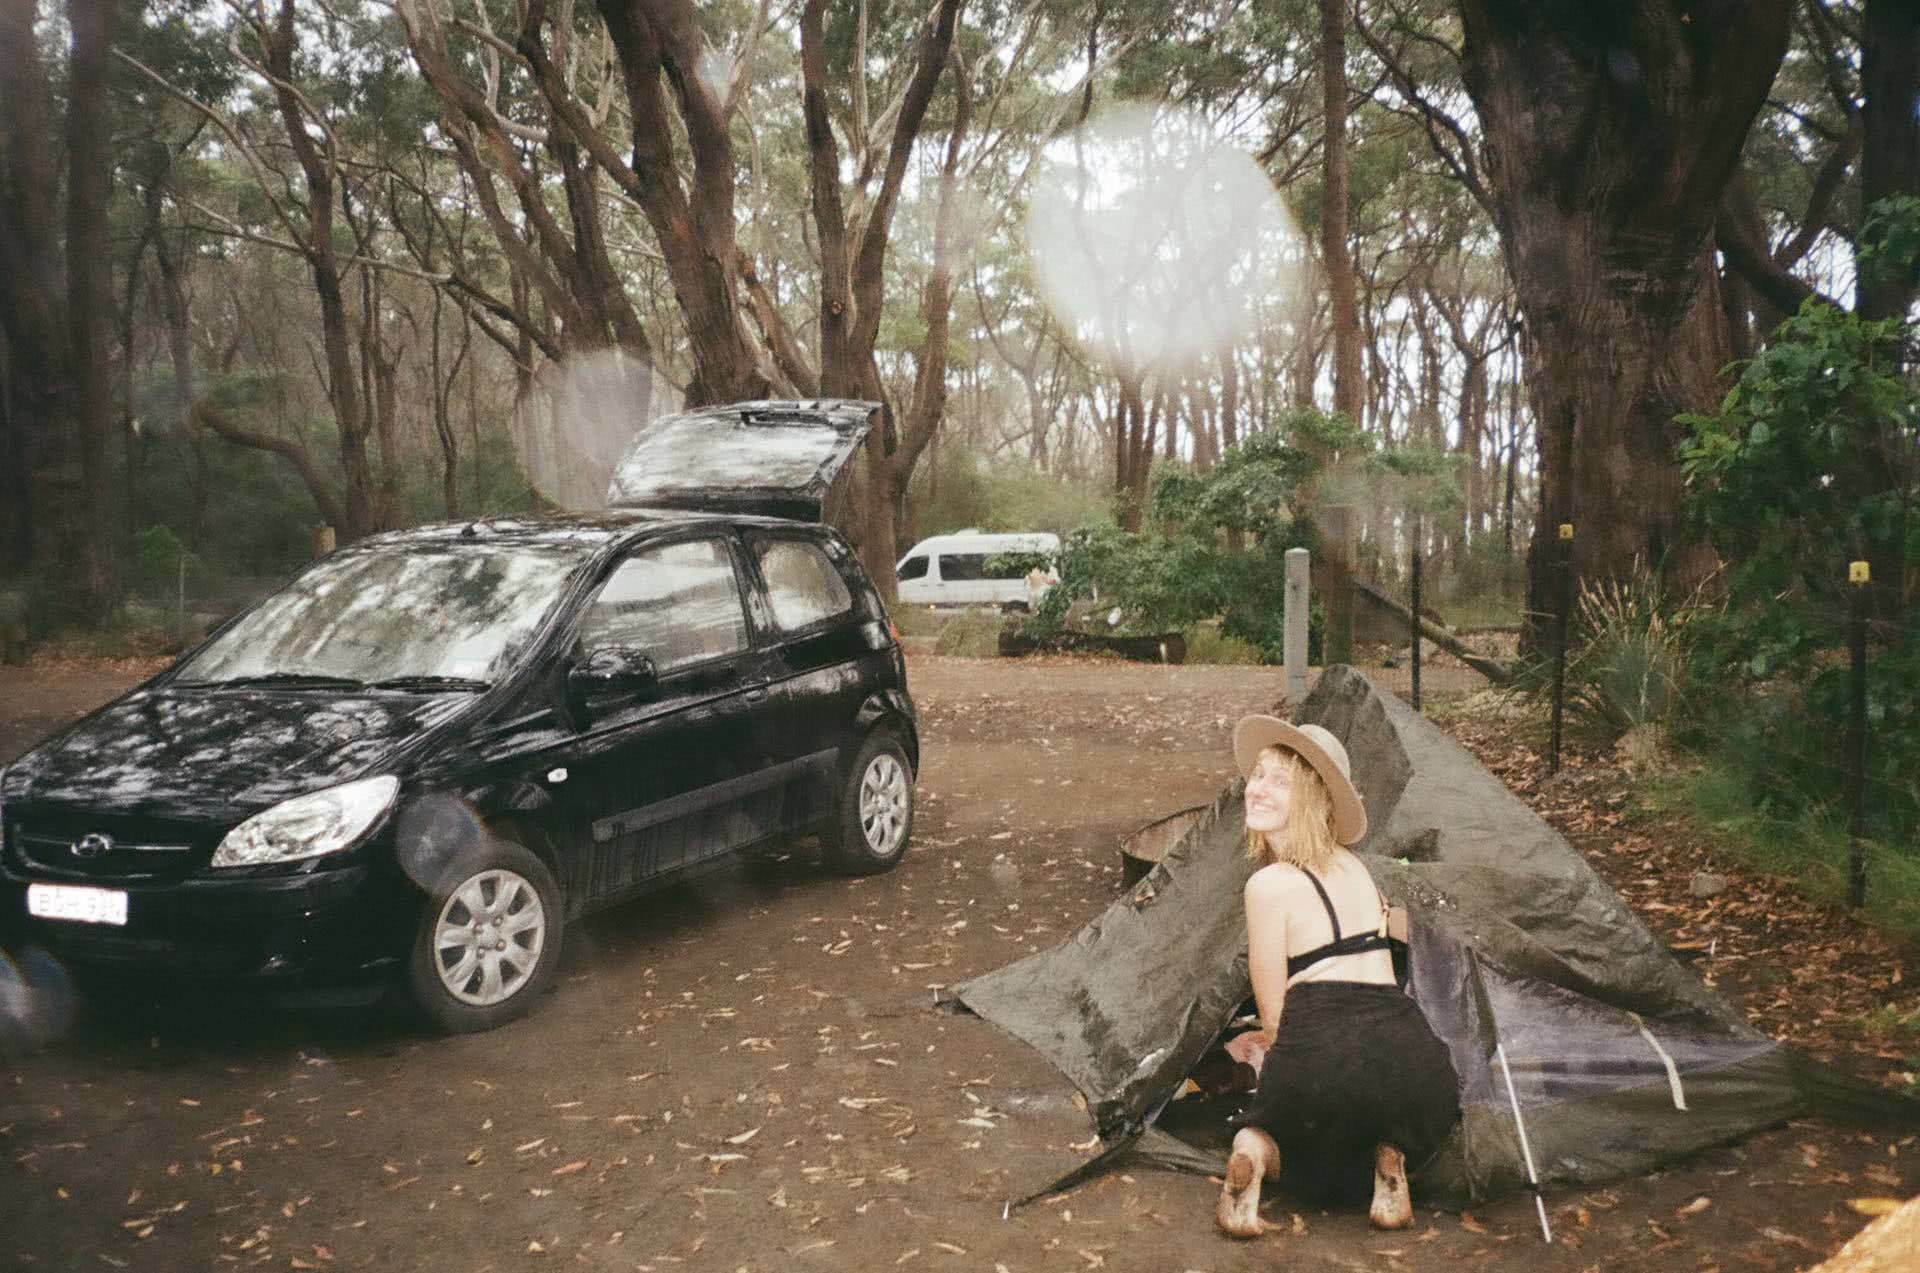 Aren't You Scared, Camping On Your Own?, Ruby Bisson, woman, tent, car, smile